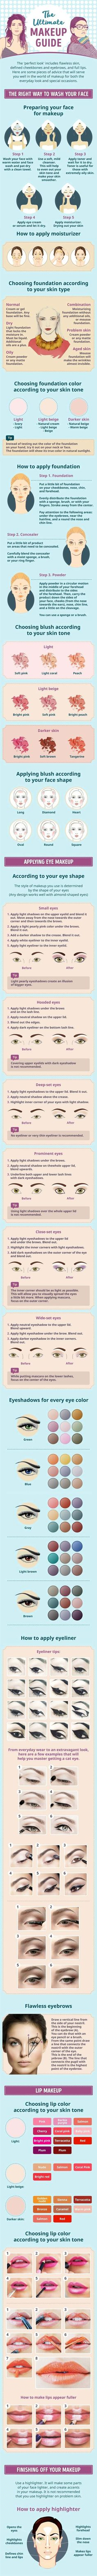 The Ultimate Makeup Guide